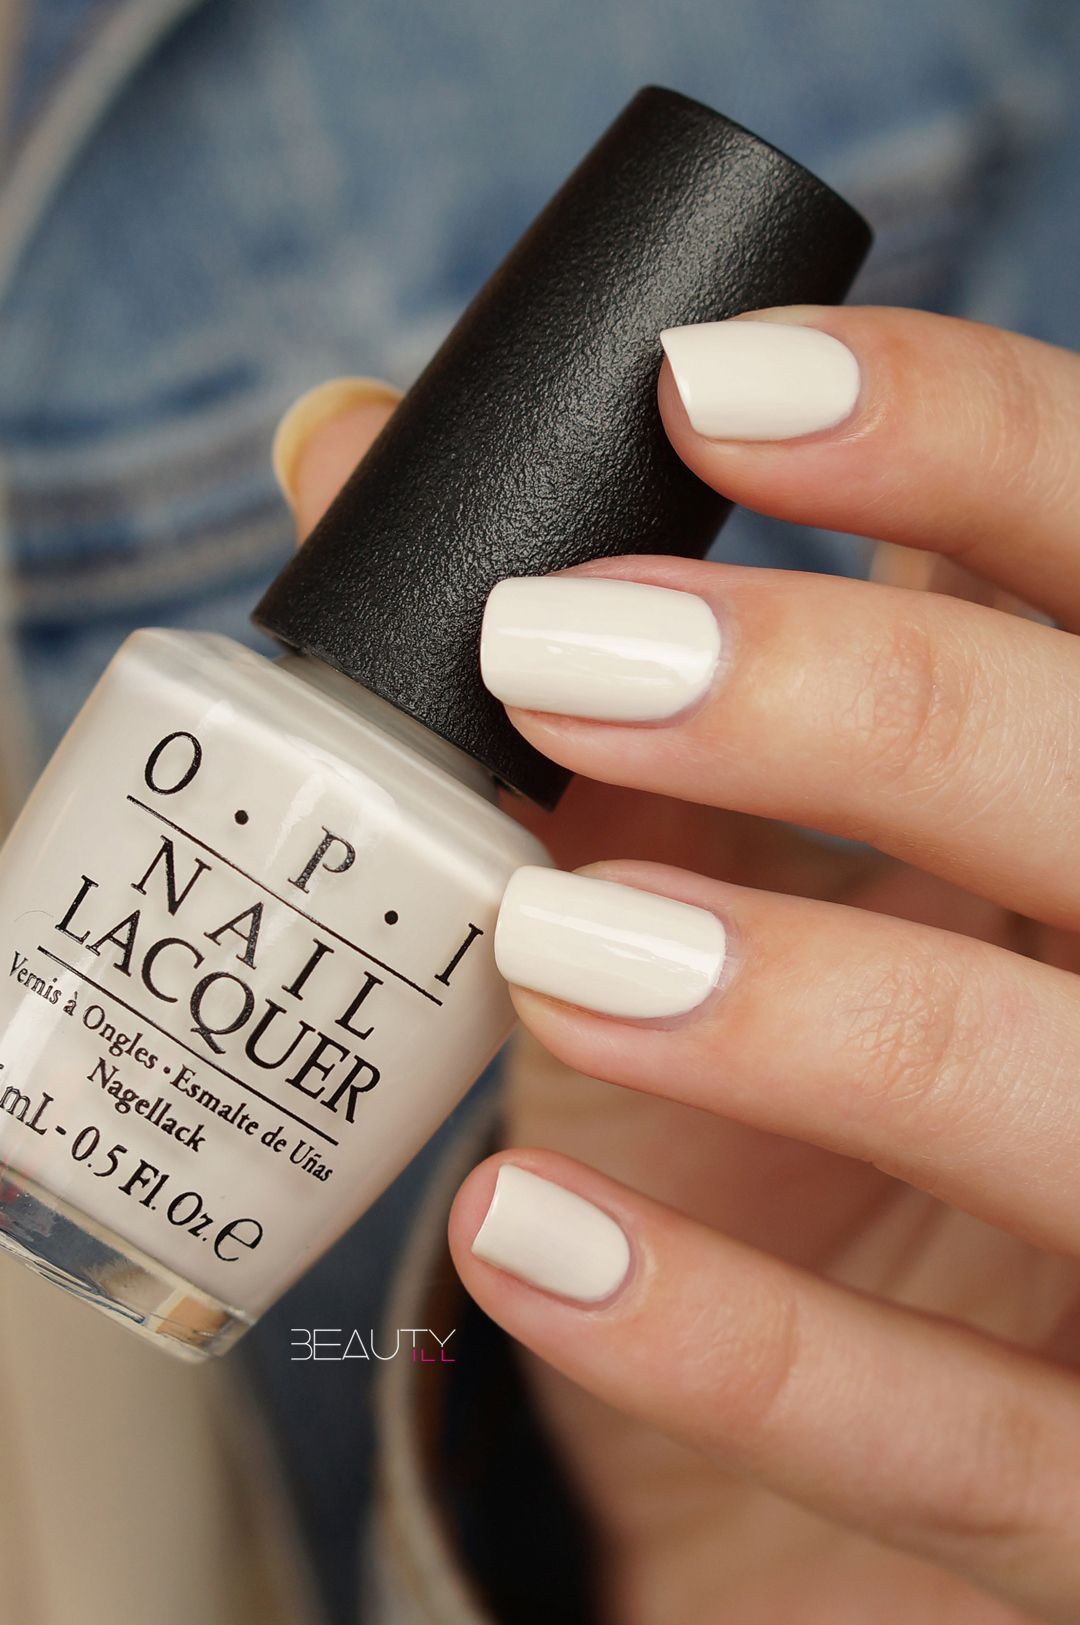 Opi White Gel Nail Polish: Opi-It's In The Cloud (3)